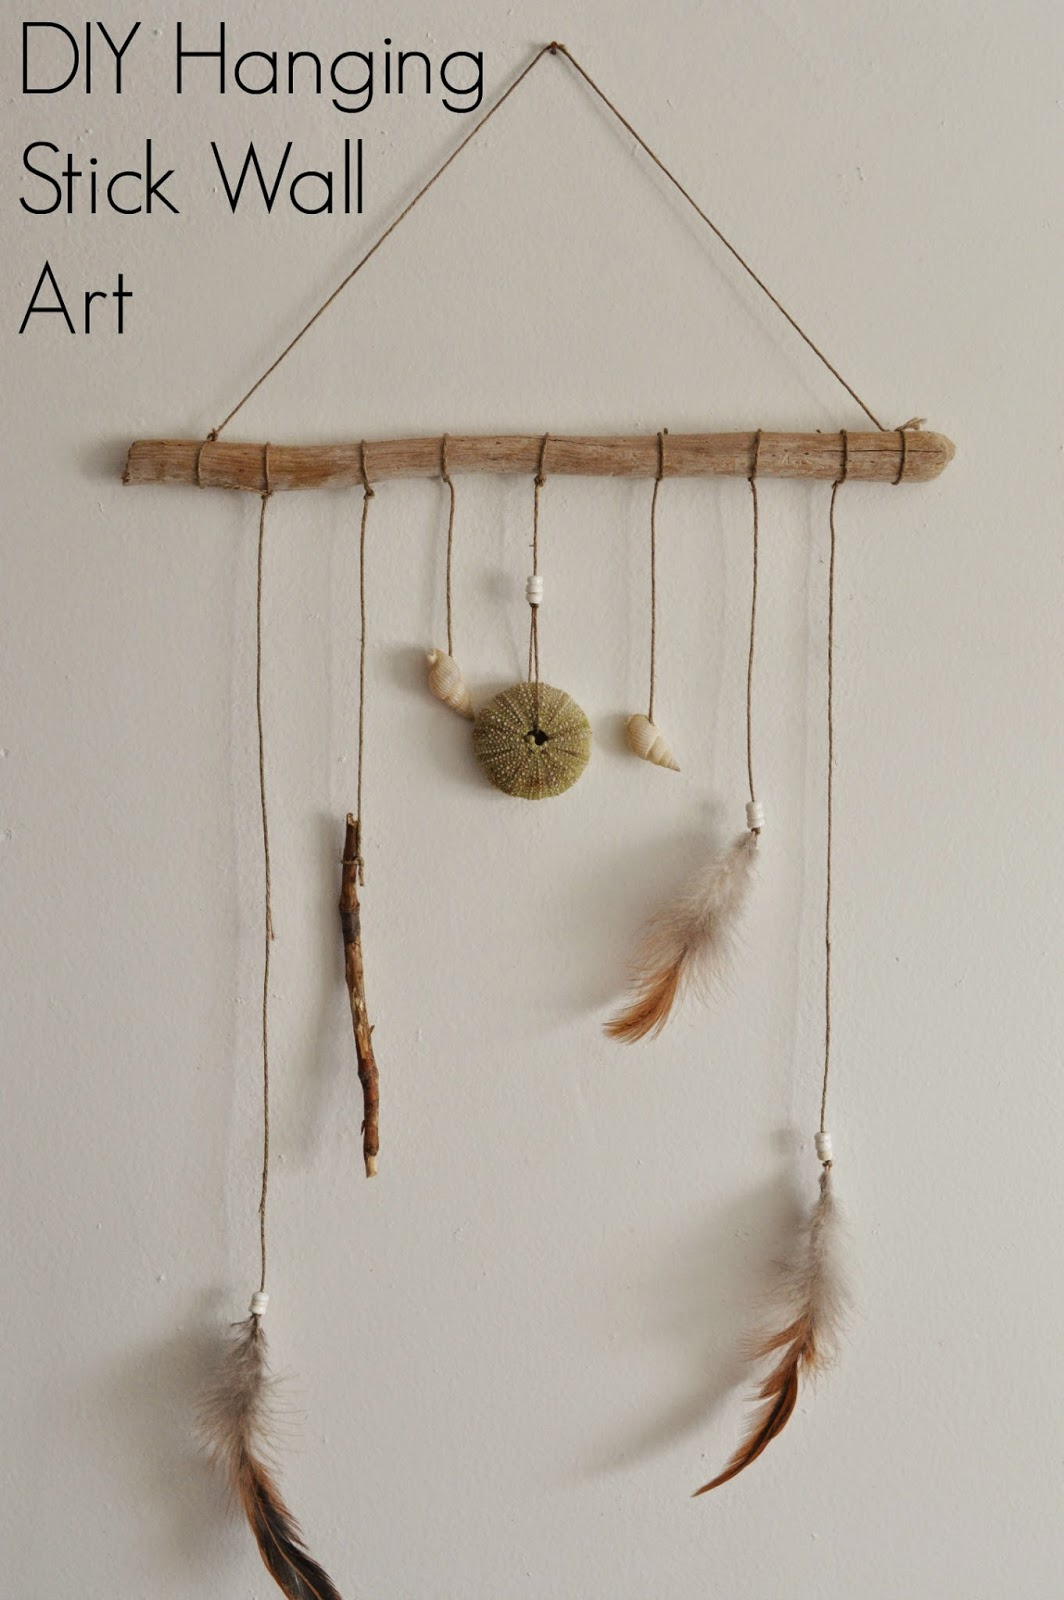 By Woods and Water: DIY Hanging Stick Wall Art